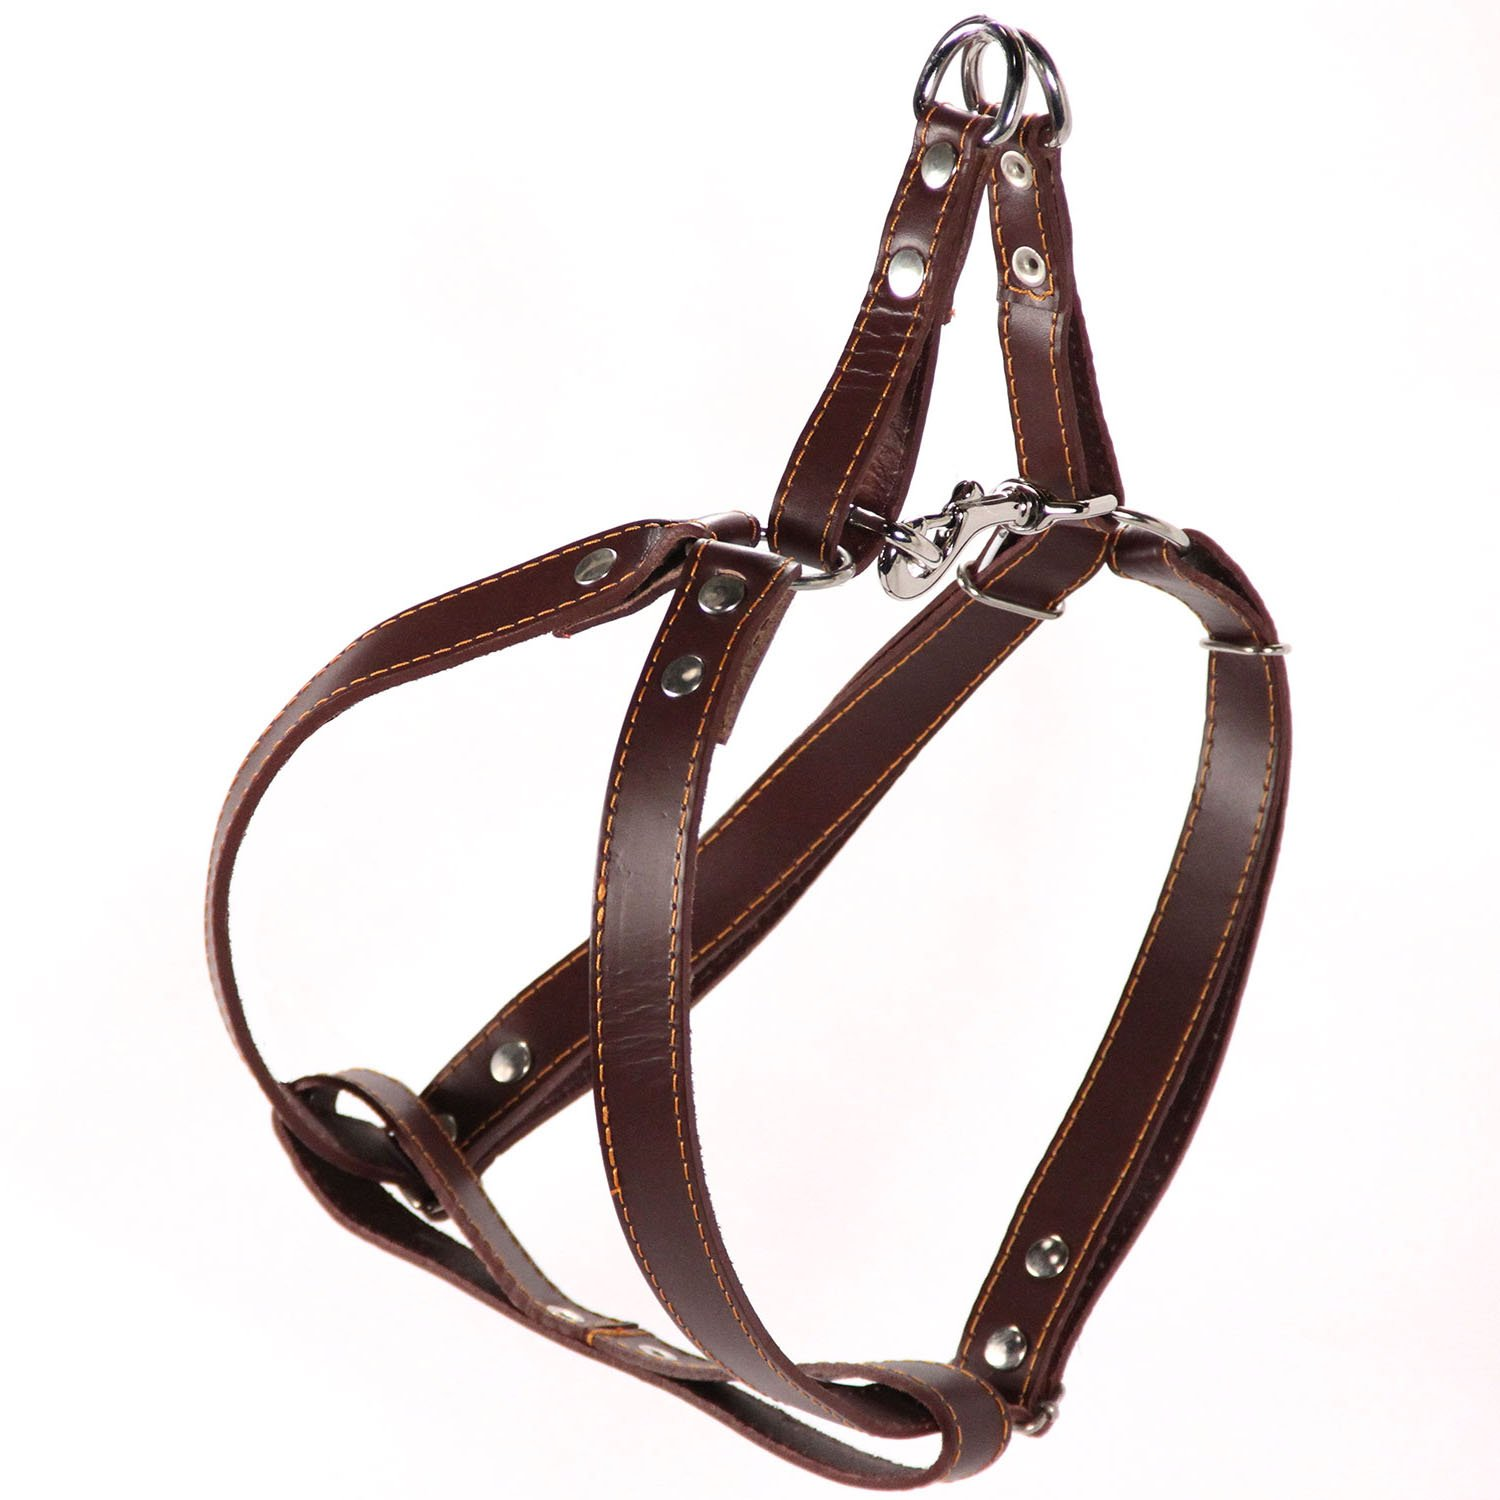 Brown Logical Leather Adjustable Dog Harness Heavy Duty Quick Release Genuine Leather Harness Brown